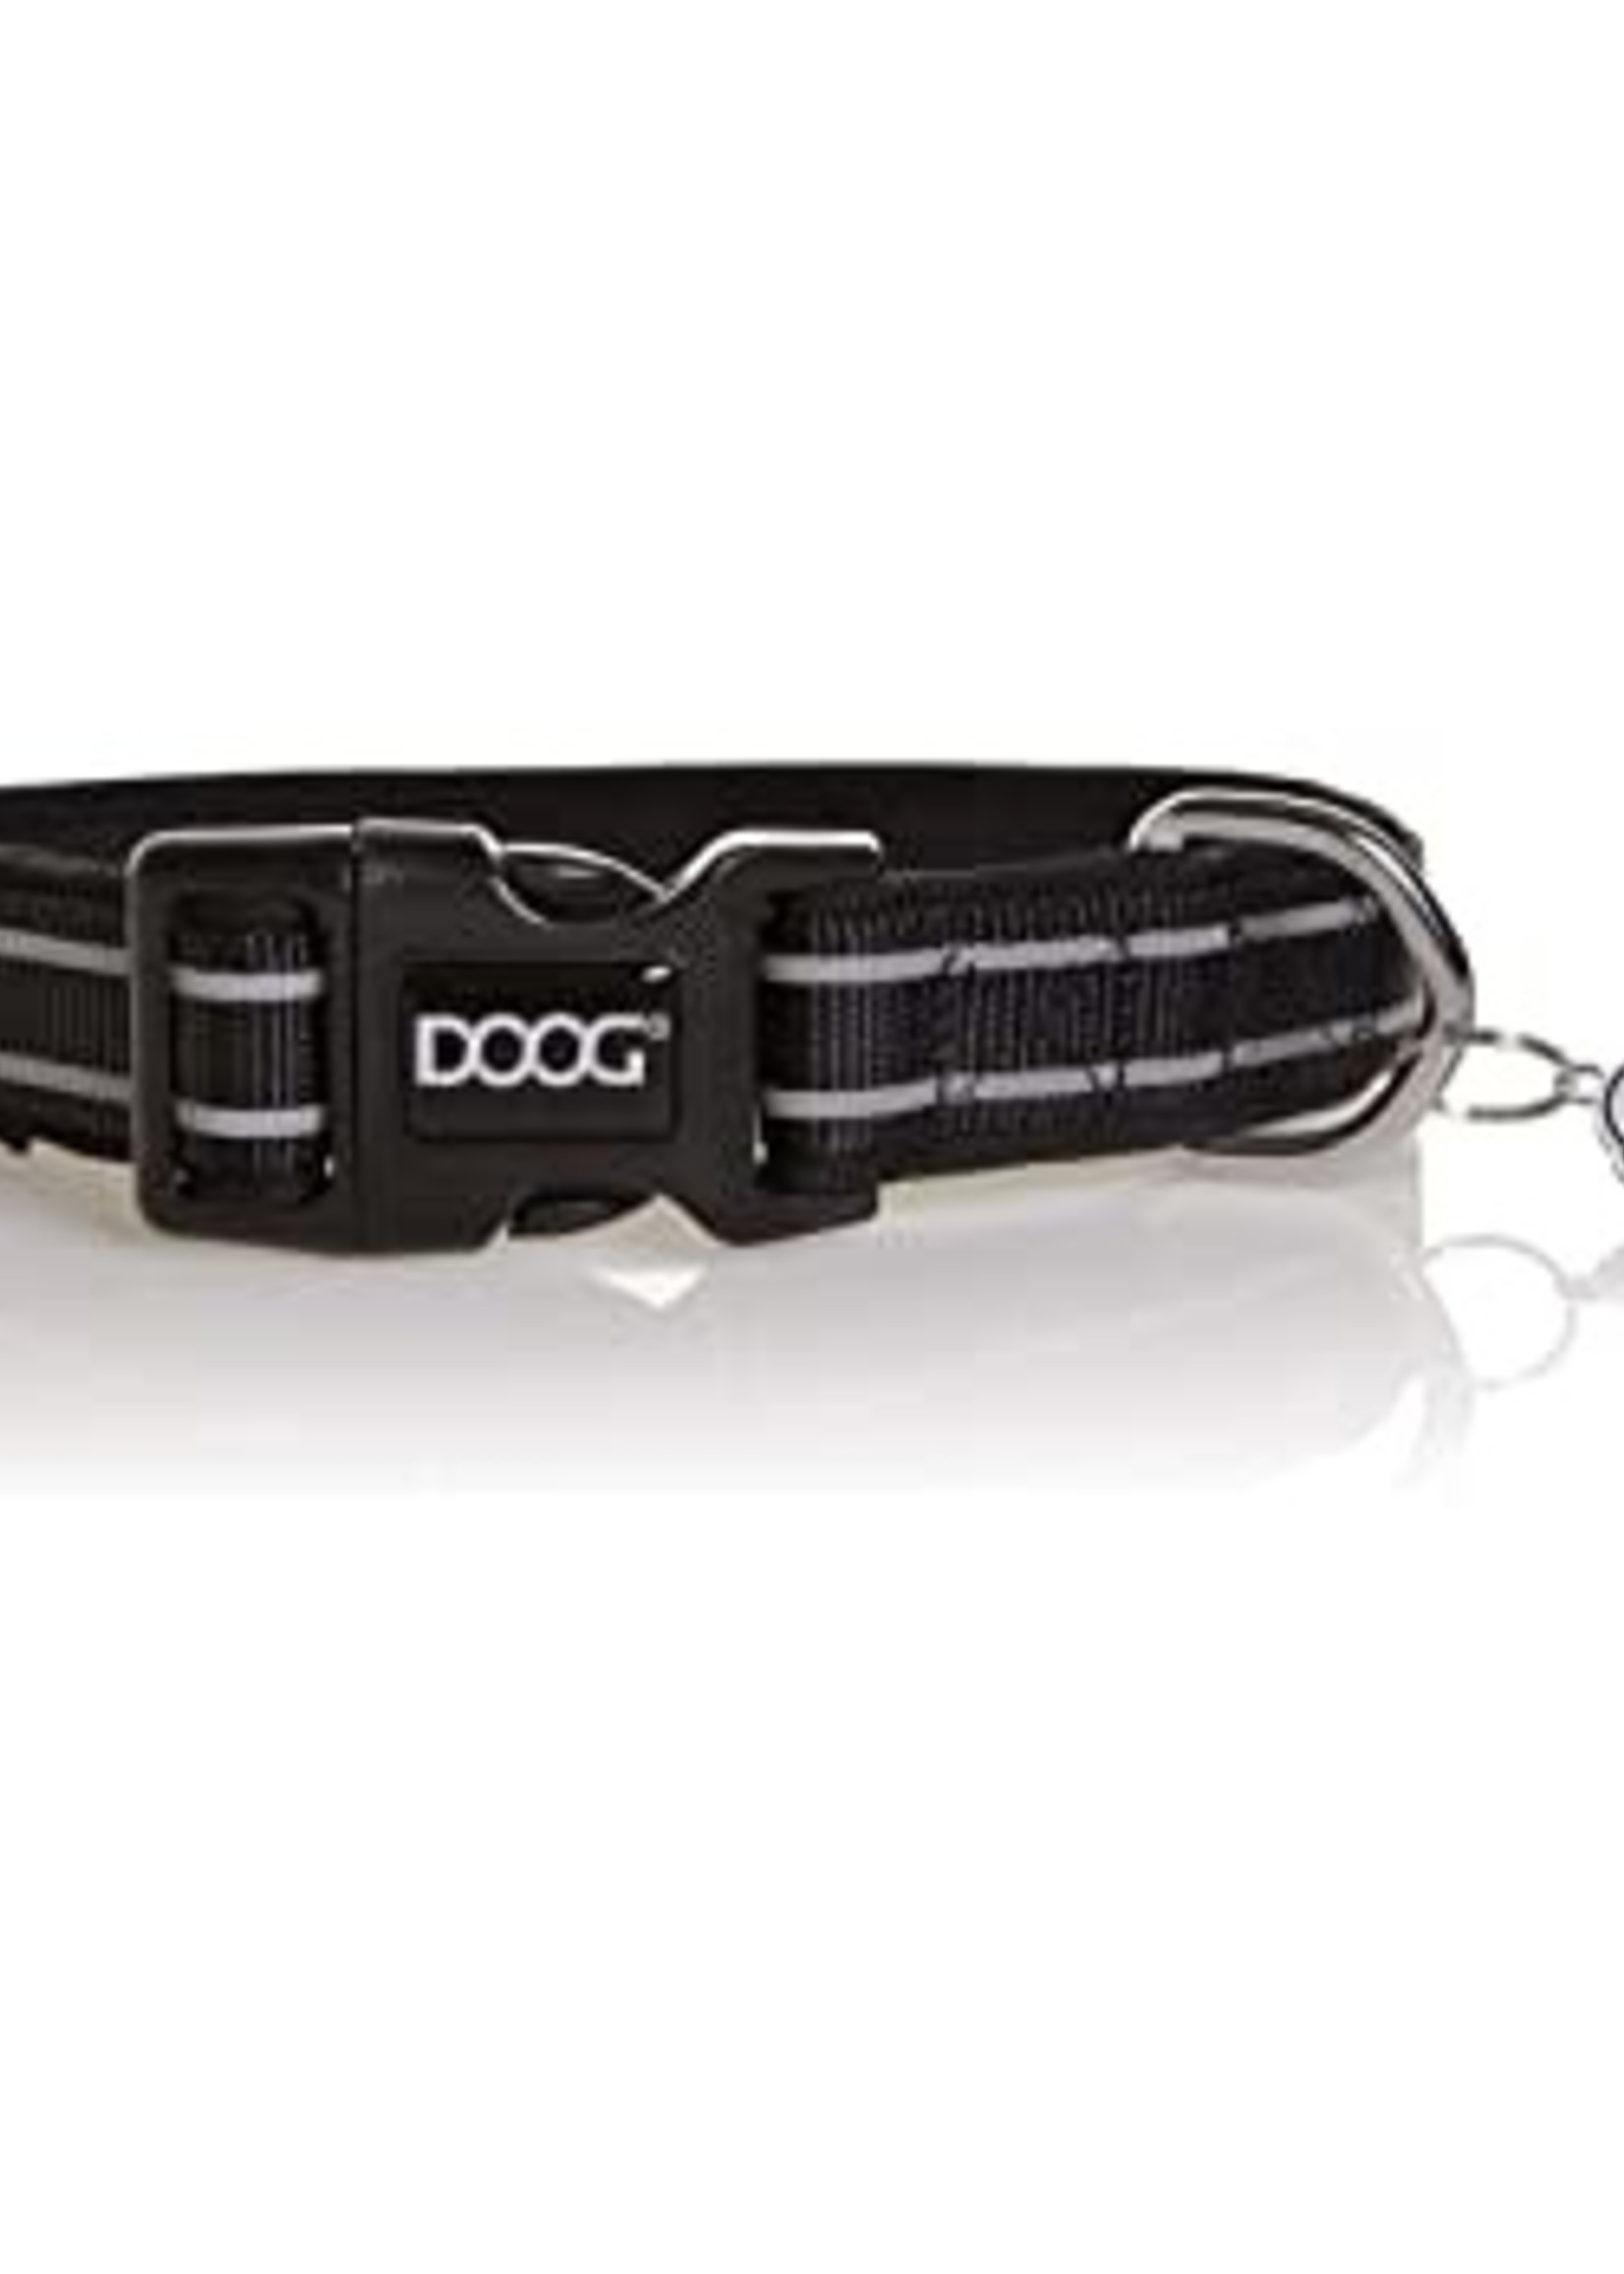 DOOG INC NEOPRENE DOG COLLAR - LASSIE XS